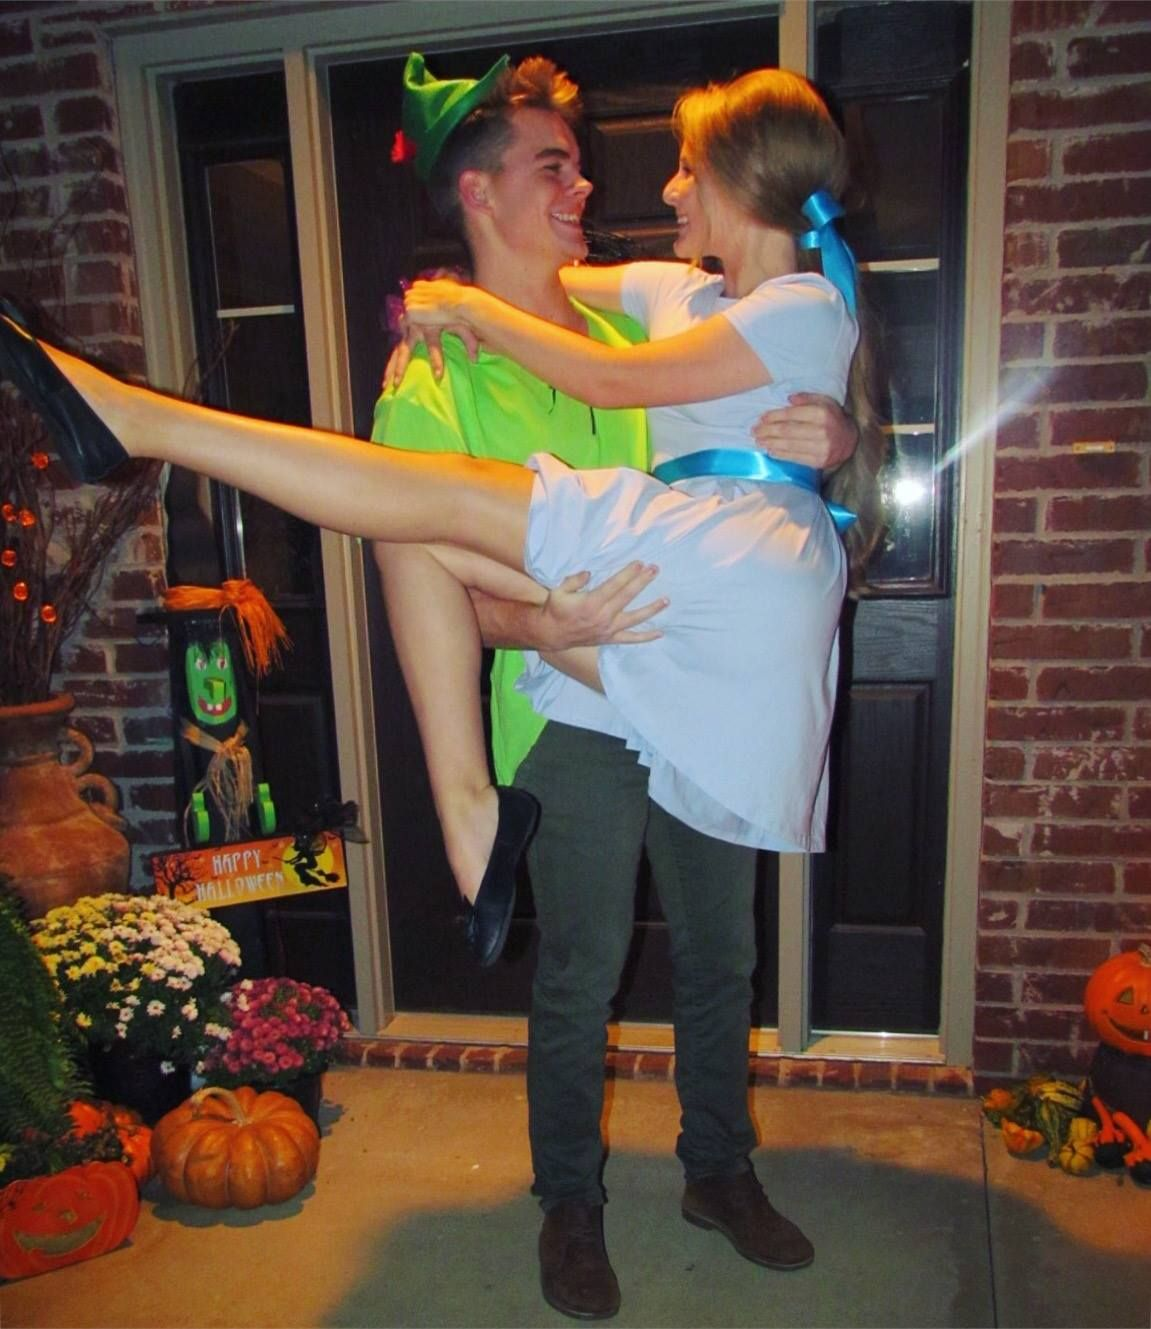 peter pan & wendy darling halloween couple costume ig: @leahharrison